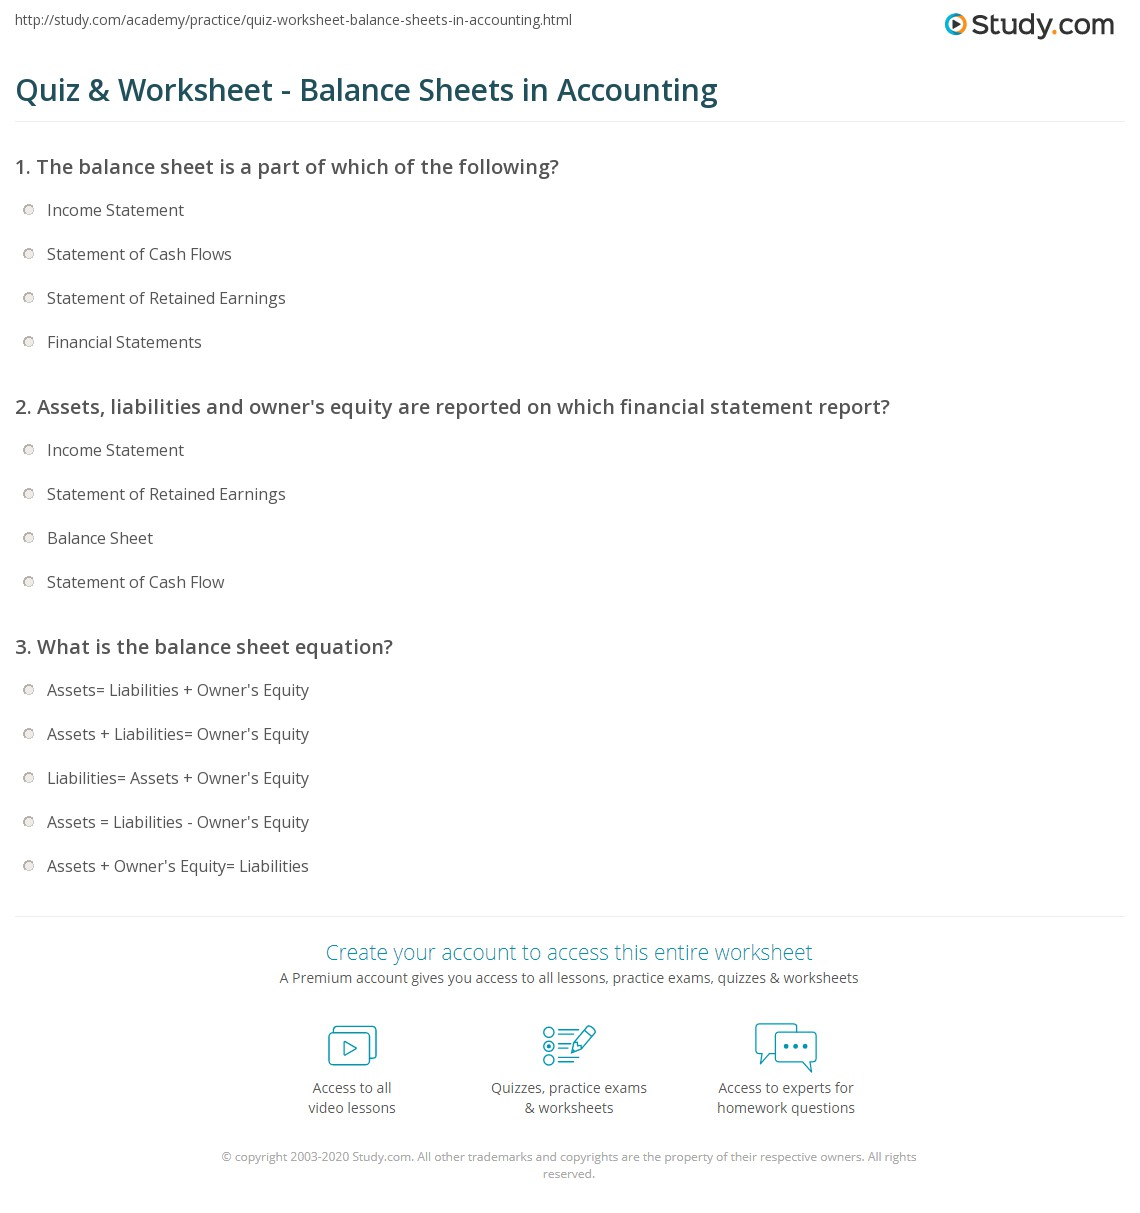 quiz worksheet balance sheets in accounting study com